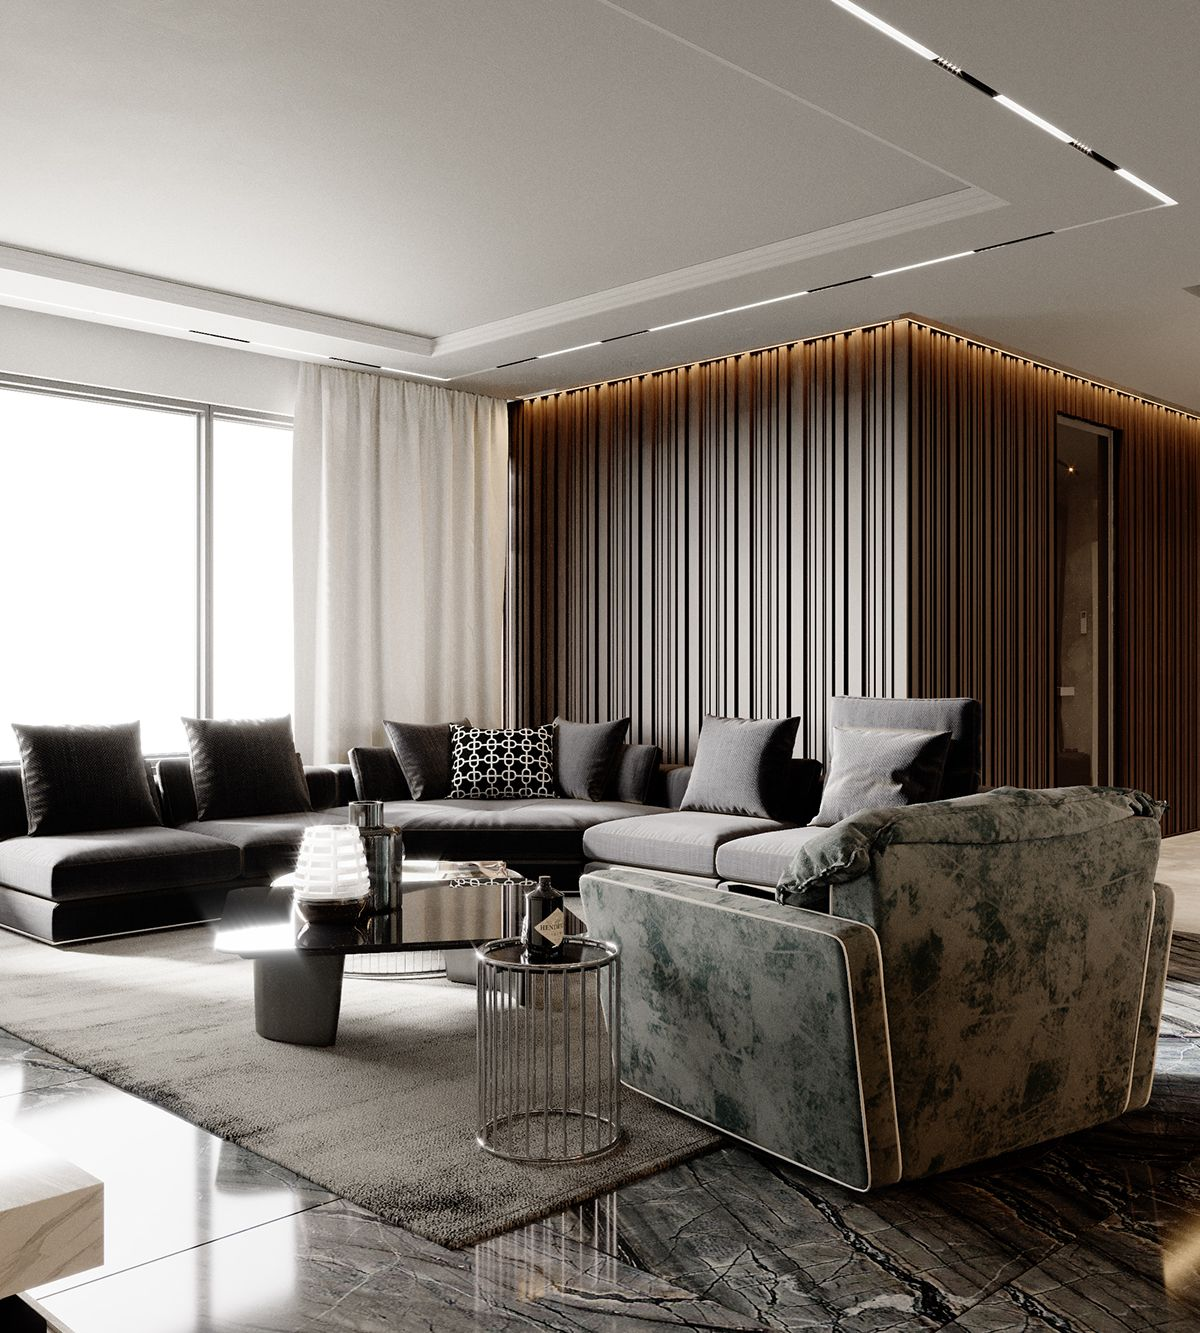 Best Apartment Lux 018 On Behance Simple Ceiling Design 400 x 300